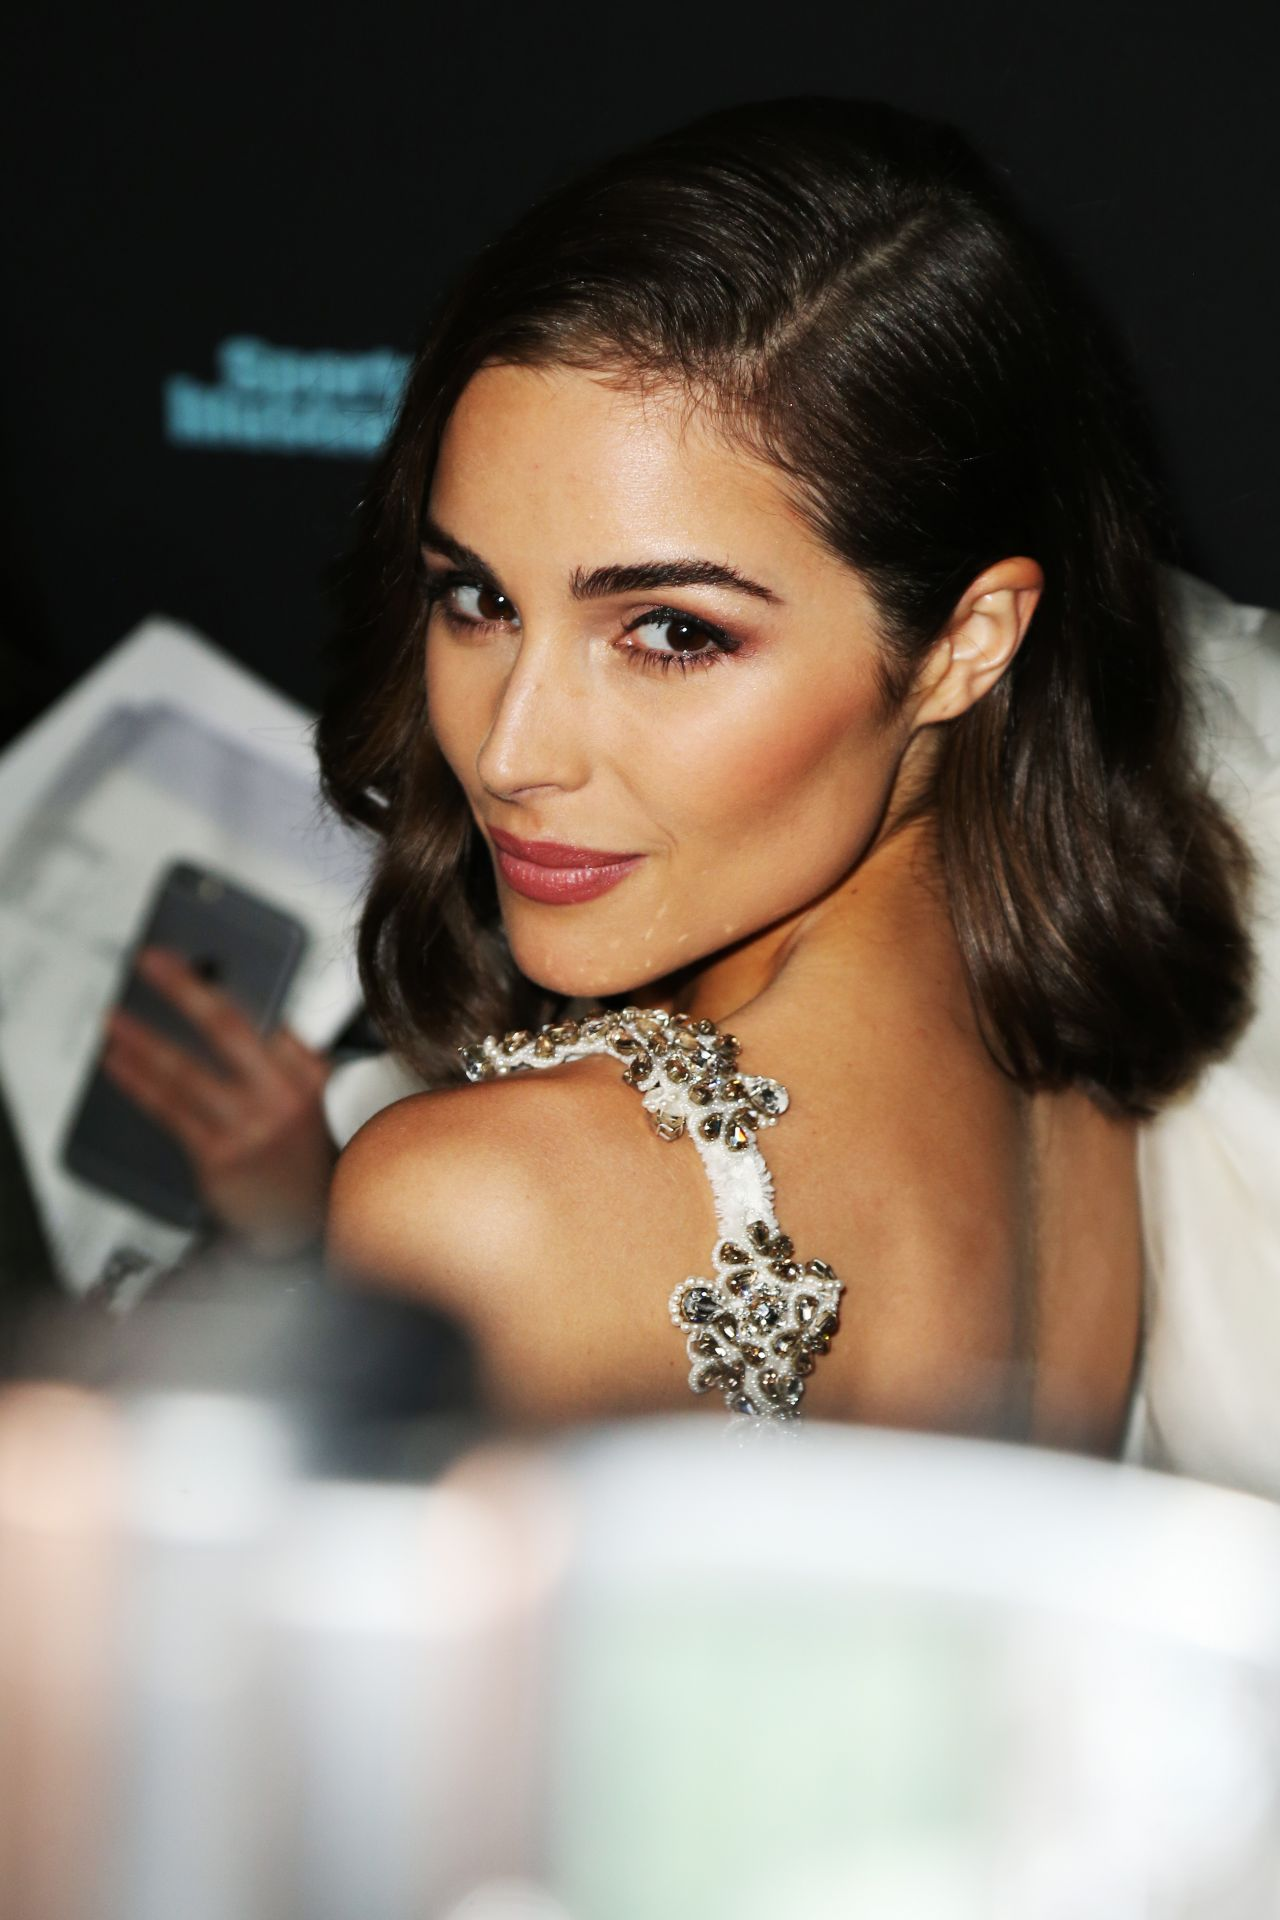 Olivia Culpo 2018 Sports Illustrated Swimsuit Issue Launch